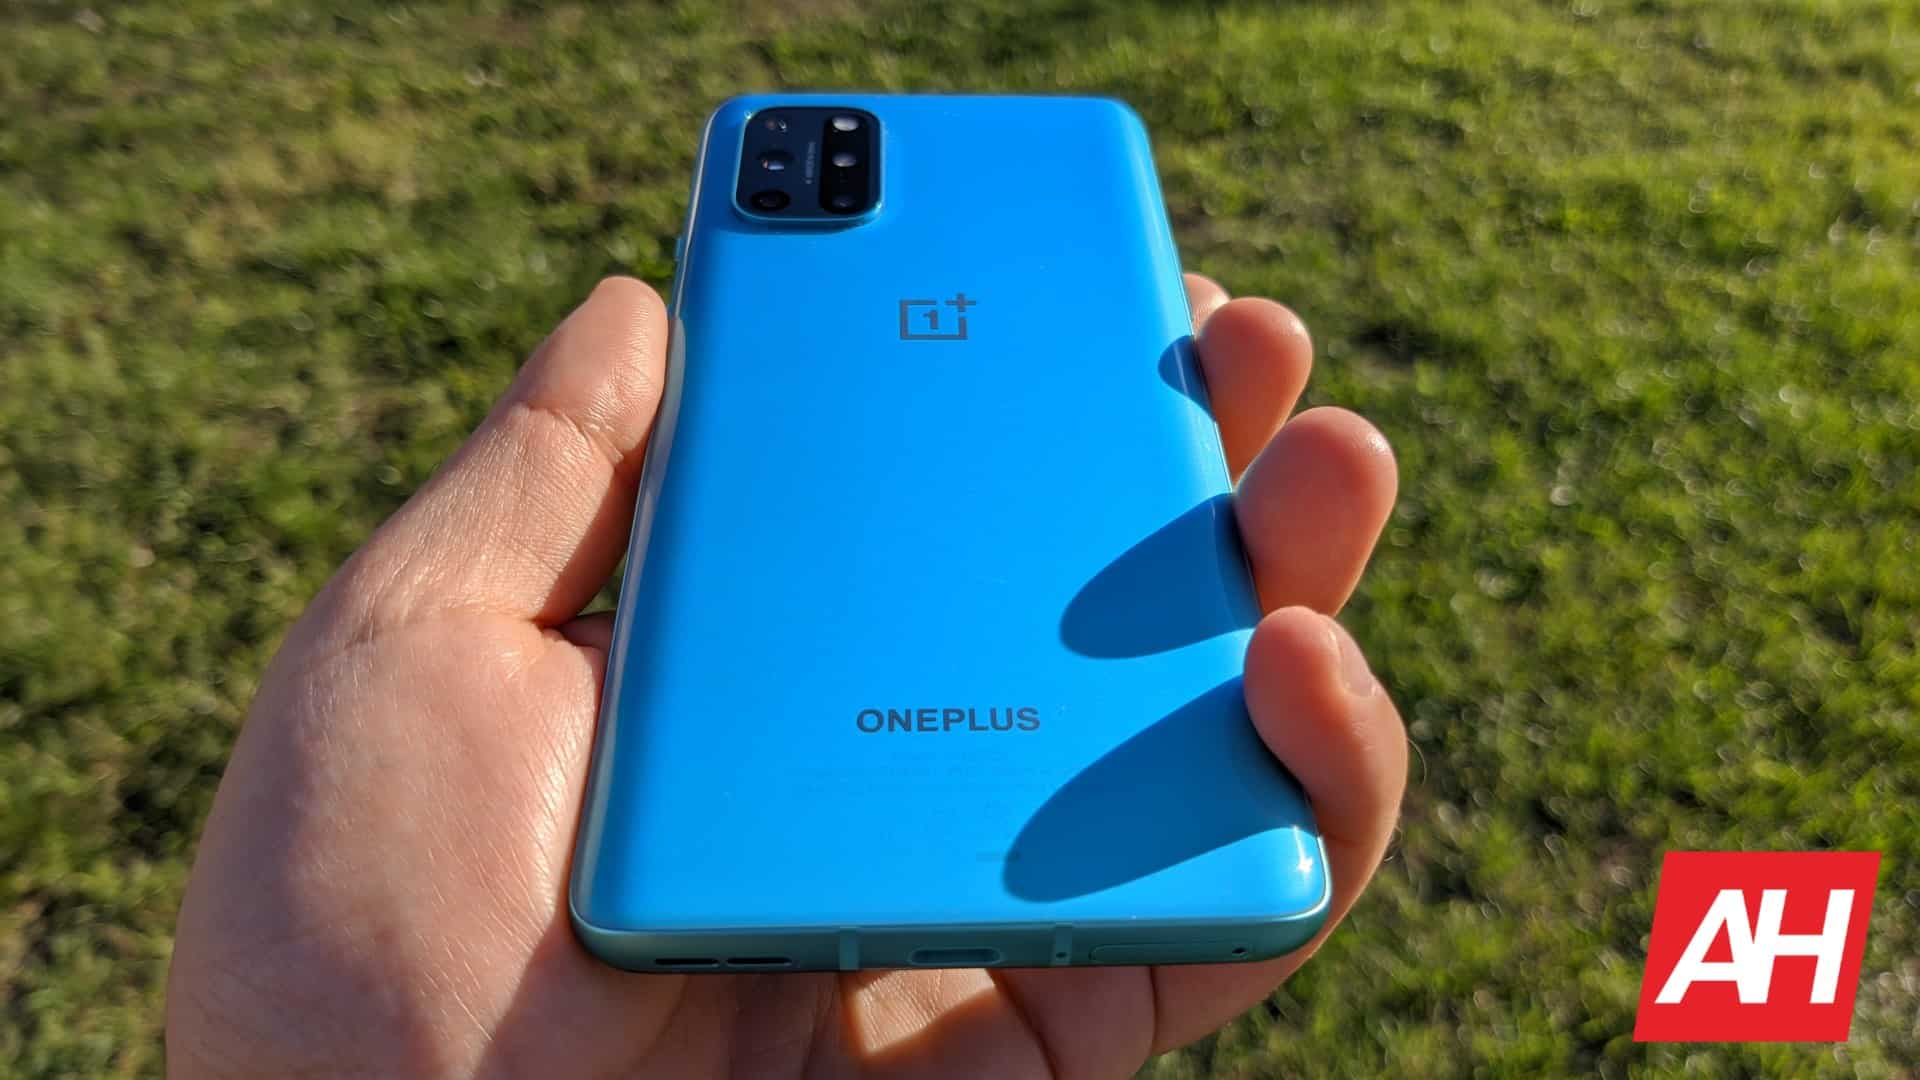 AH OnePlus 8T image 115